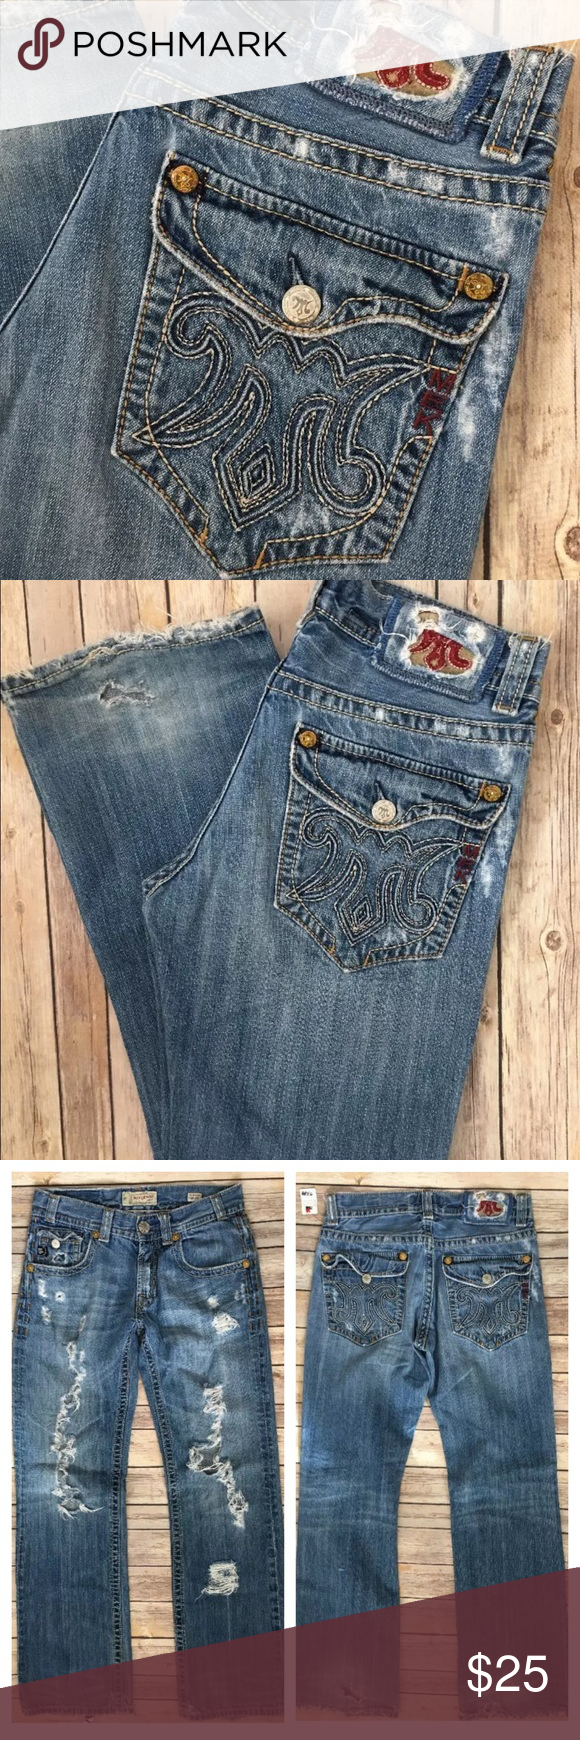 """🚫Sold🚫MEK Denim Buckle Easter Island 31 x 34 Des Tag Size - 31 x 34 Waist Measured Across - 16.5"""" Inseam - 34"""" Rise - 9.5"""" Jeans are destroyed/distressed. MEK Jeans Bootcut"""